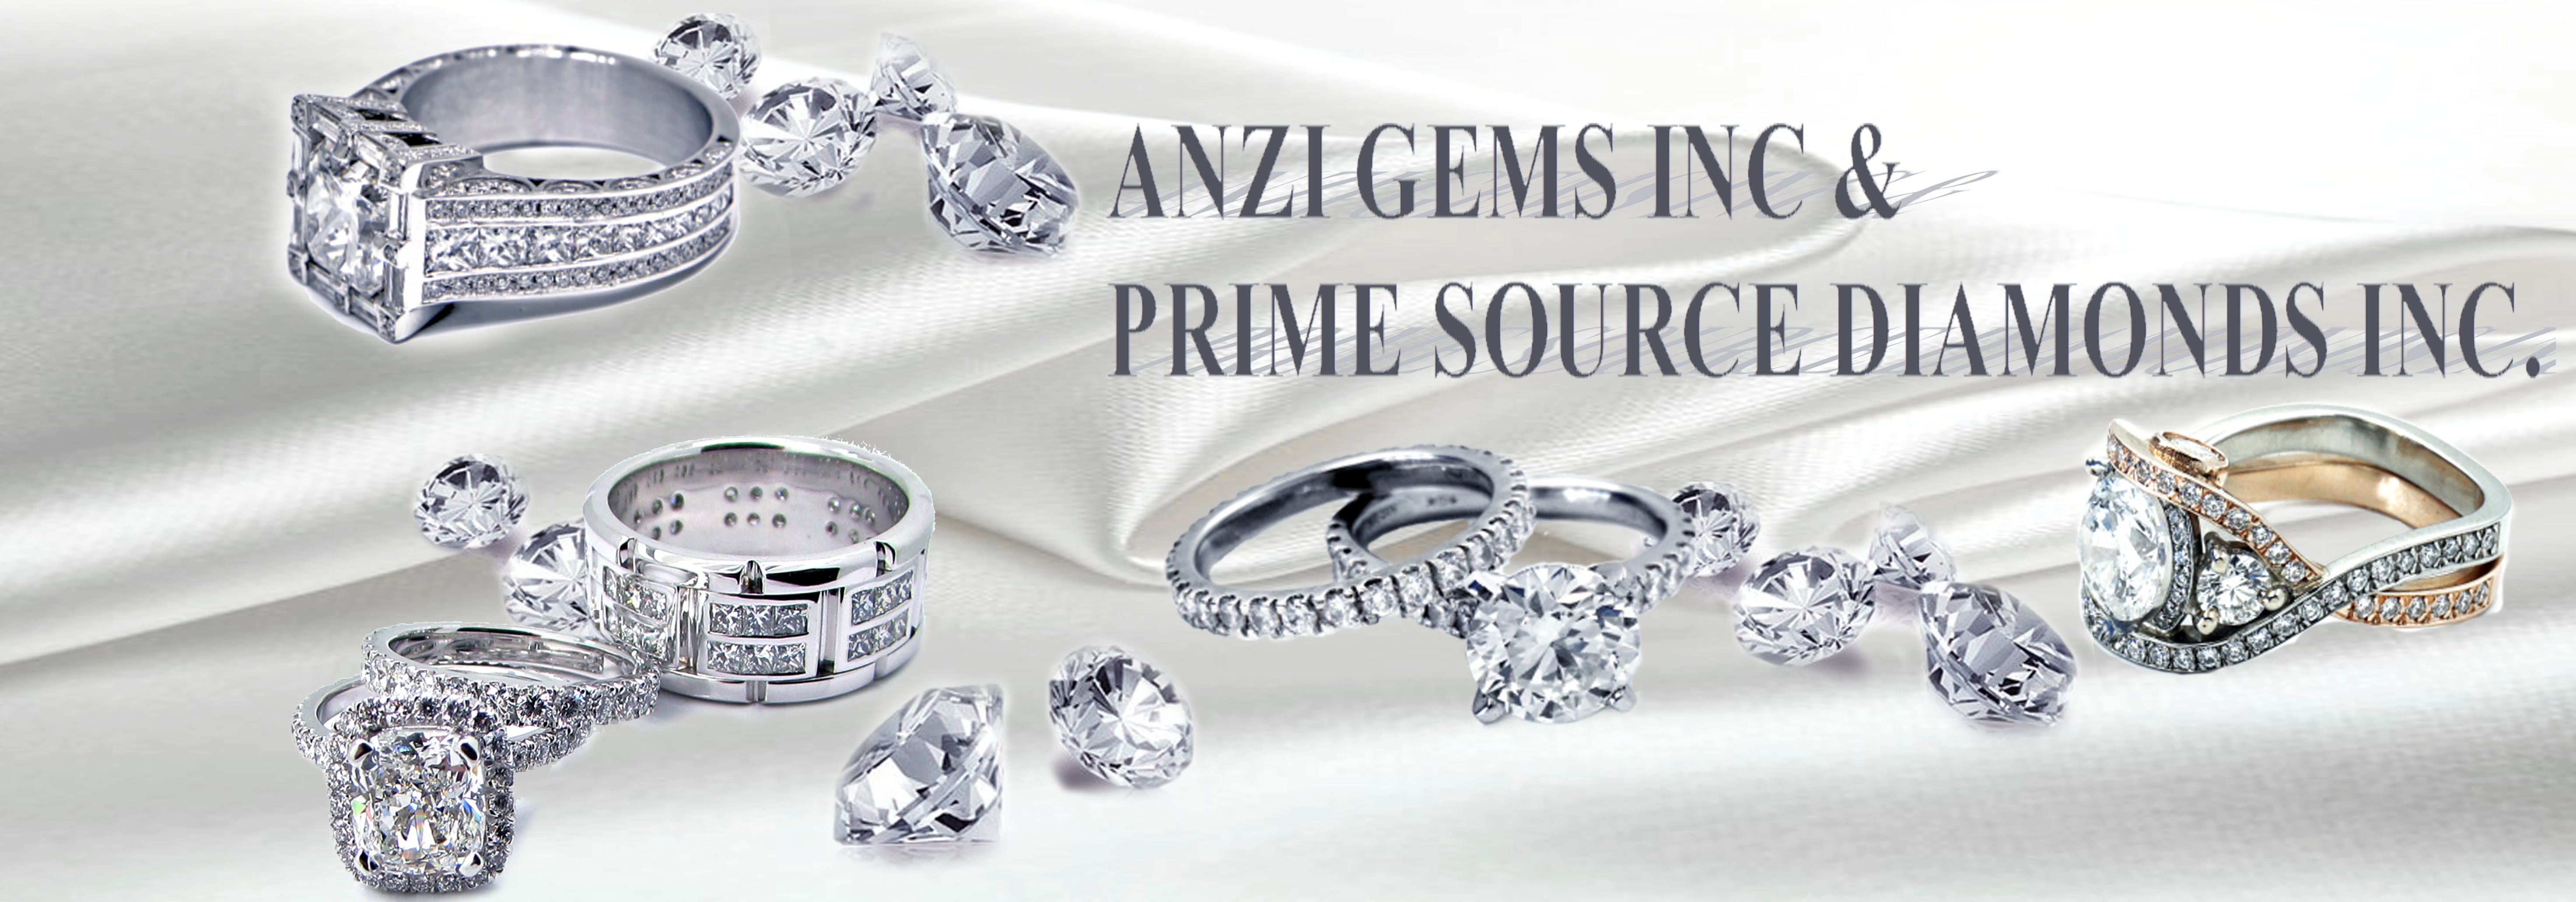 Anzi Gems Inc